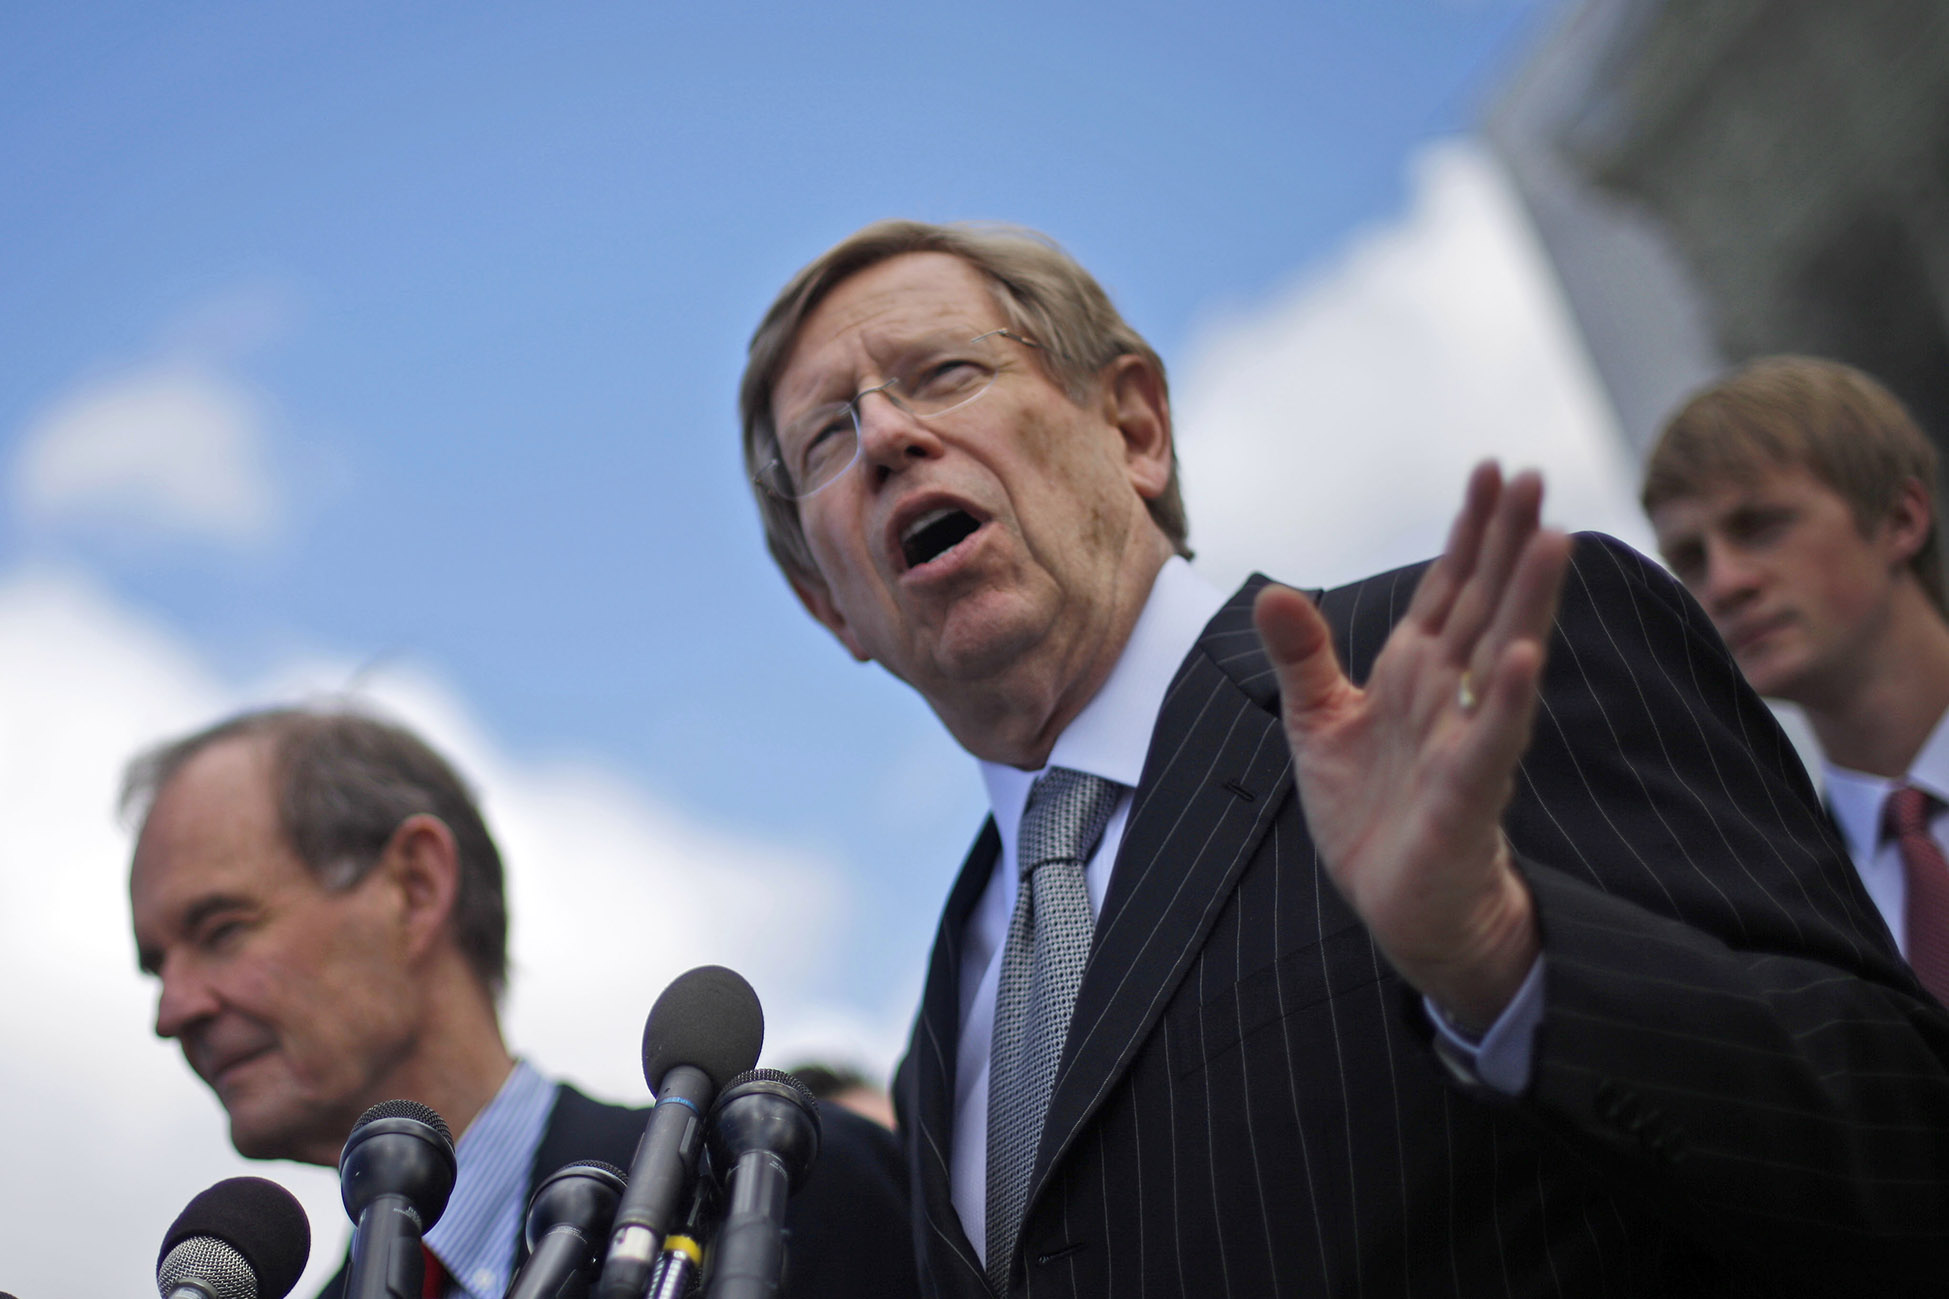 Plaintiff attorneys Theodore Olson, right, and David Boies, meet with the media outside the Supreme Court in Washington, on March 26, 2013, after the court heard arguments on California's voter approved ban on same-sex marriage, Proposition 8.